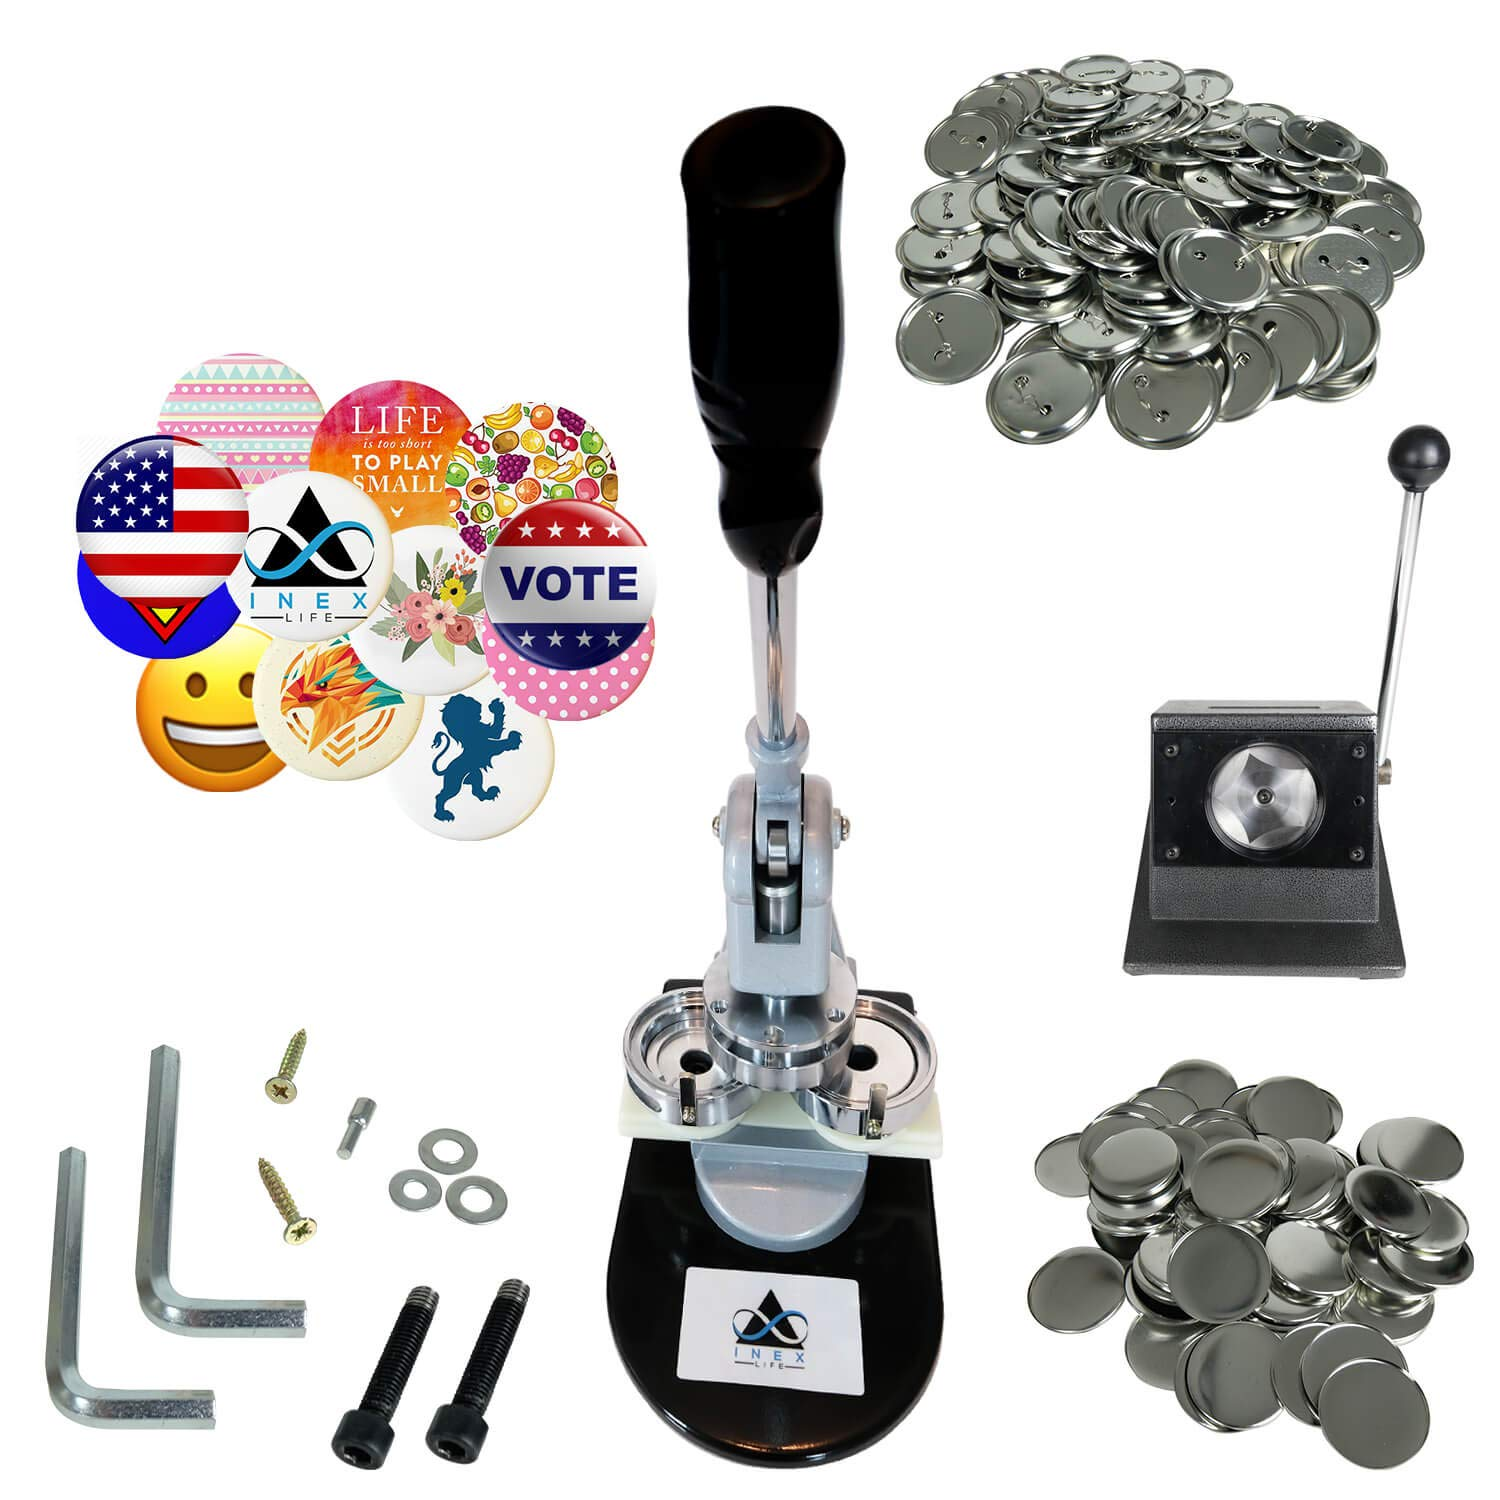 Button Maker Badge Making Machine - 58mm 2 ¼ inch 2.28 inch | Heavy Duty Circle Cutter Punch Press Machine | 1000 Circle Button Parts - Metal Badge Button Shell & Pin Back | All-in-One Complete DIY